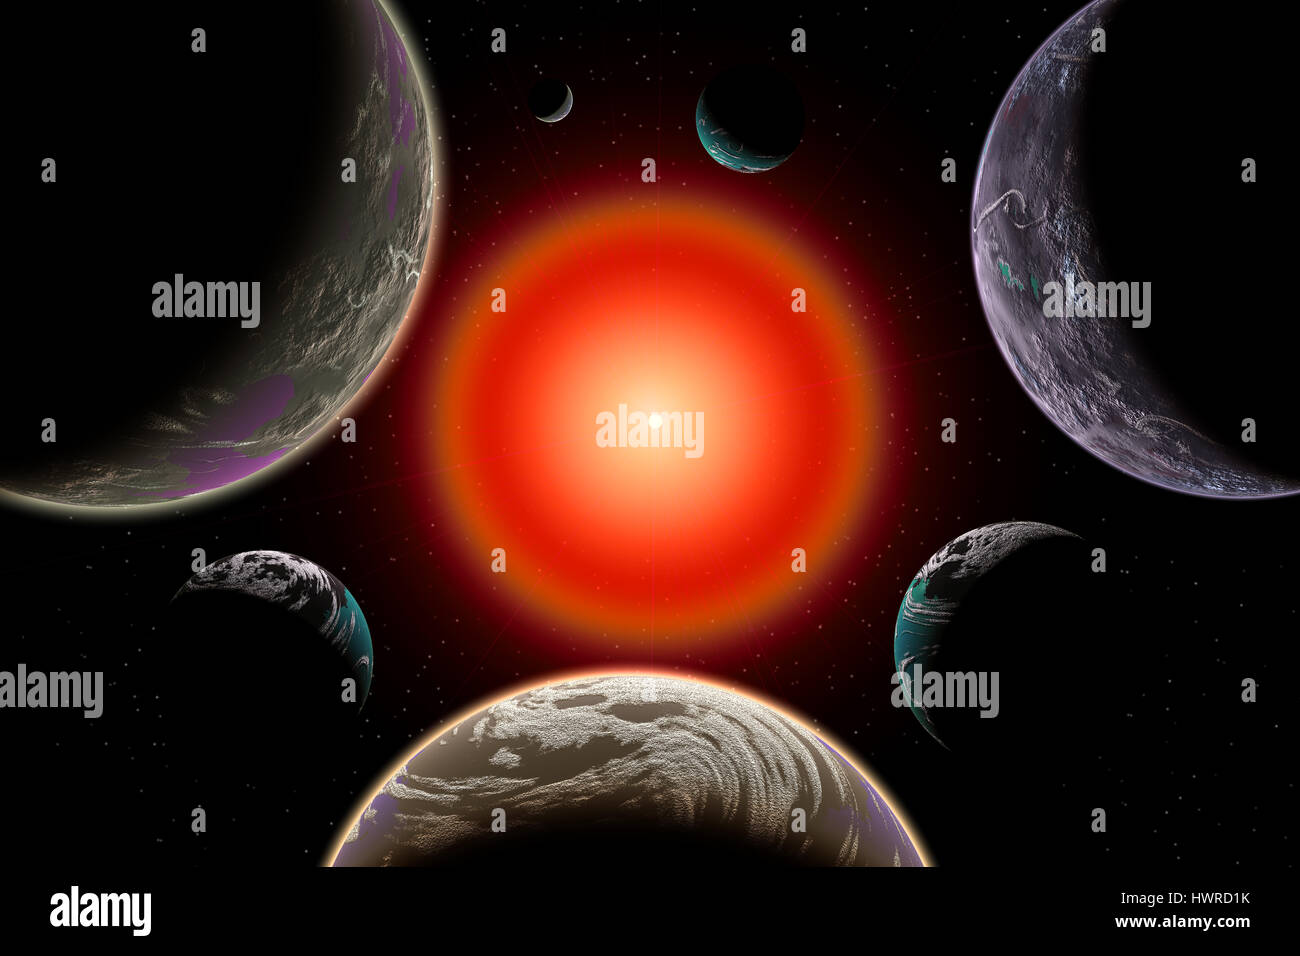 The Trappist Star System Consisting Of 7 Planets. - Stock Image